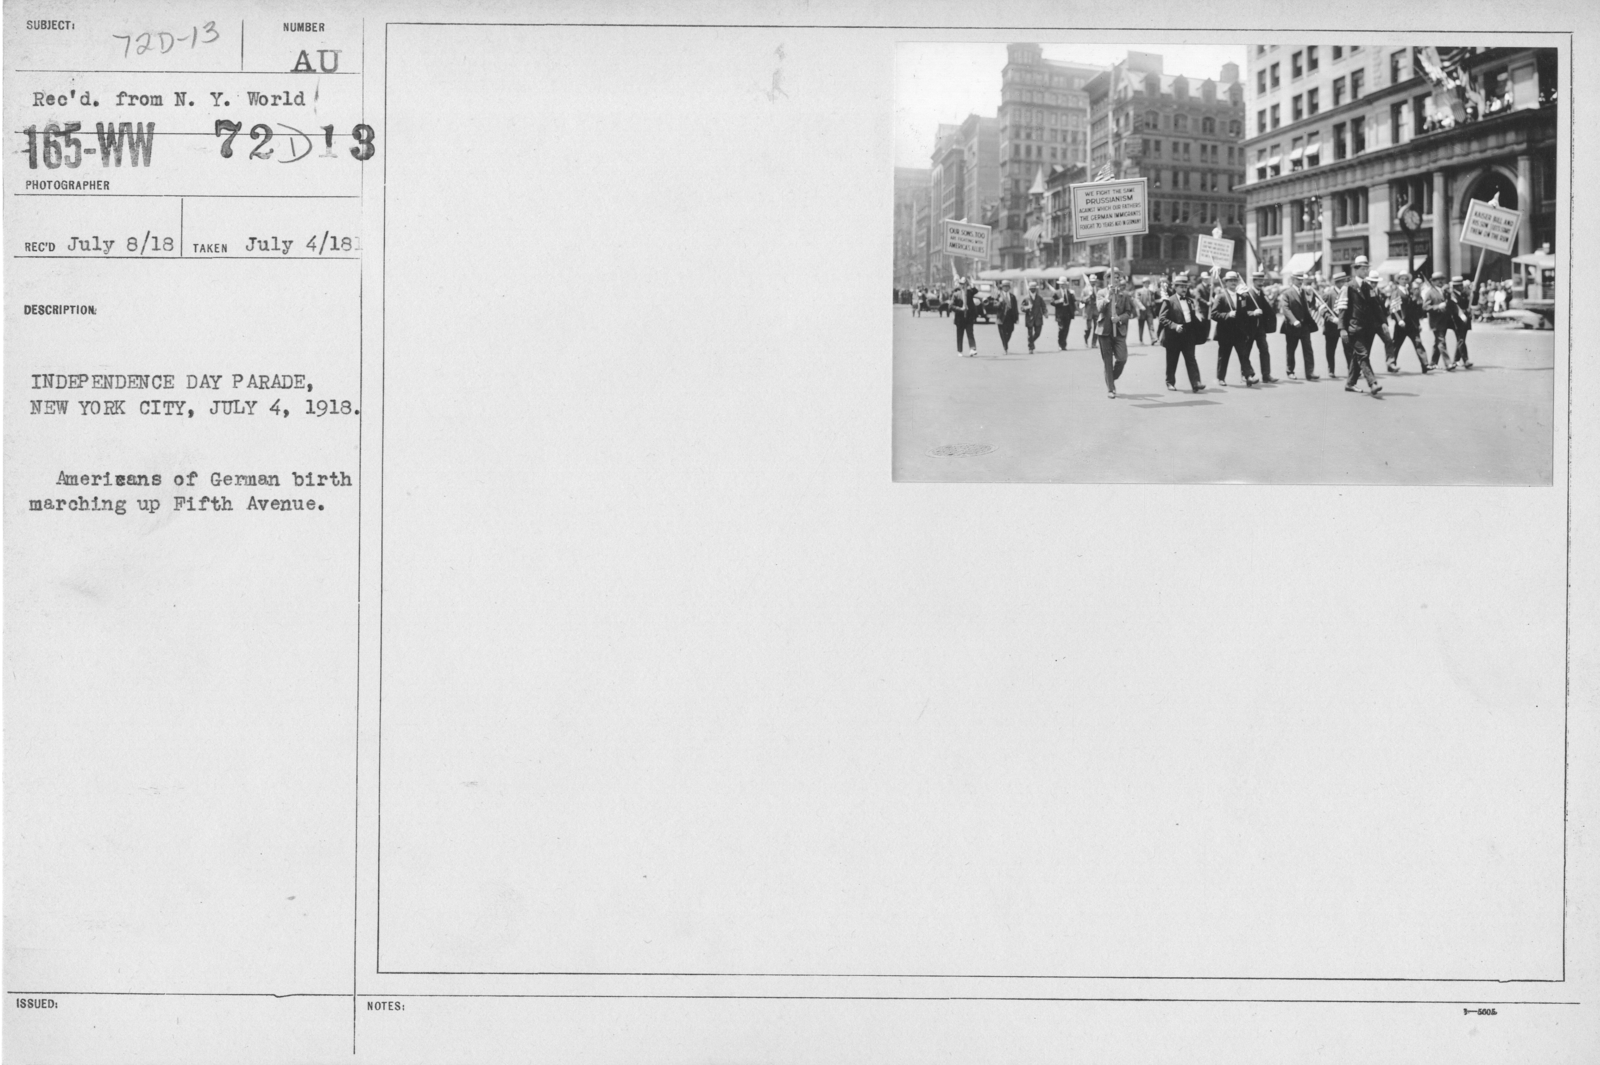 Ceremonies - Independence Day, 1918 - Indpendence Day Parade, New York City, July 4, 1918. Americans of German birth marching up Fifth Avenue